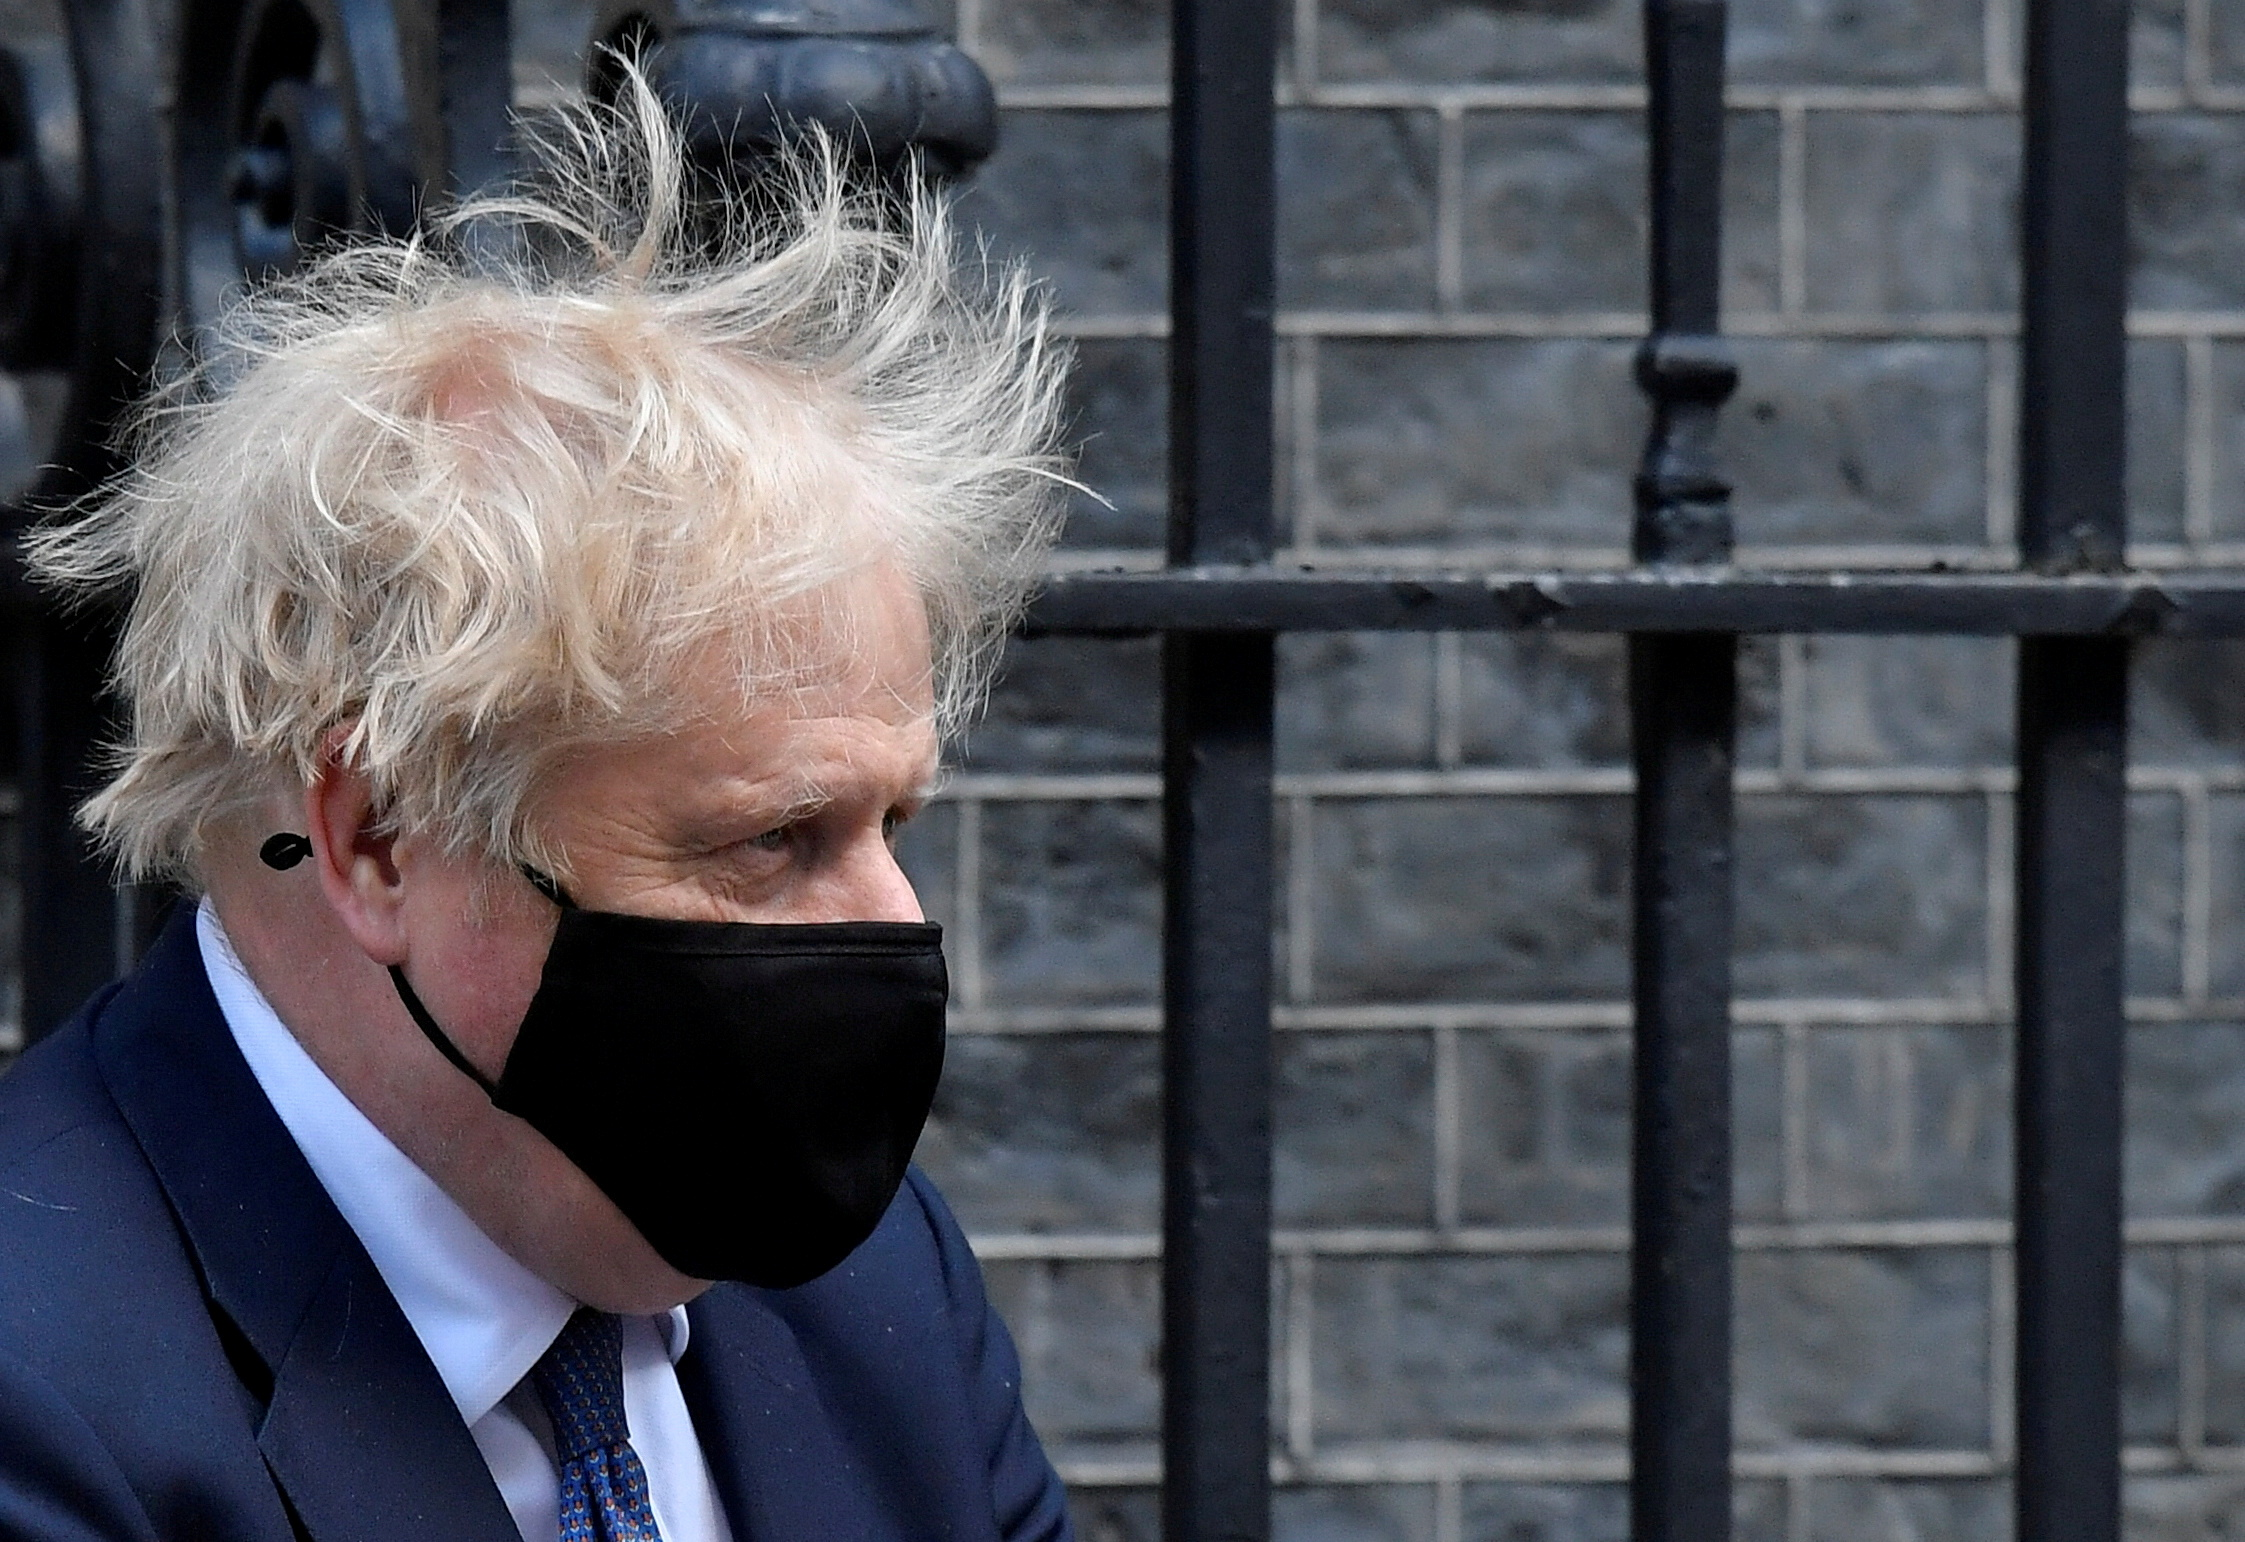 Britain's Prime Minister Boris Johnson leaves Downing Street in London, Britain, May 19, 2021. REUTERS/Toby Melville/File Photo